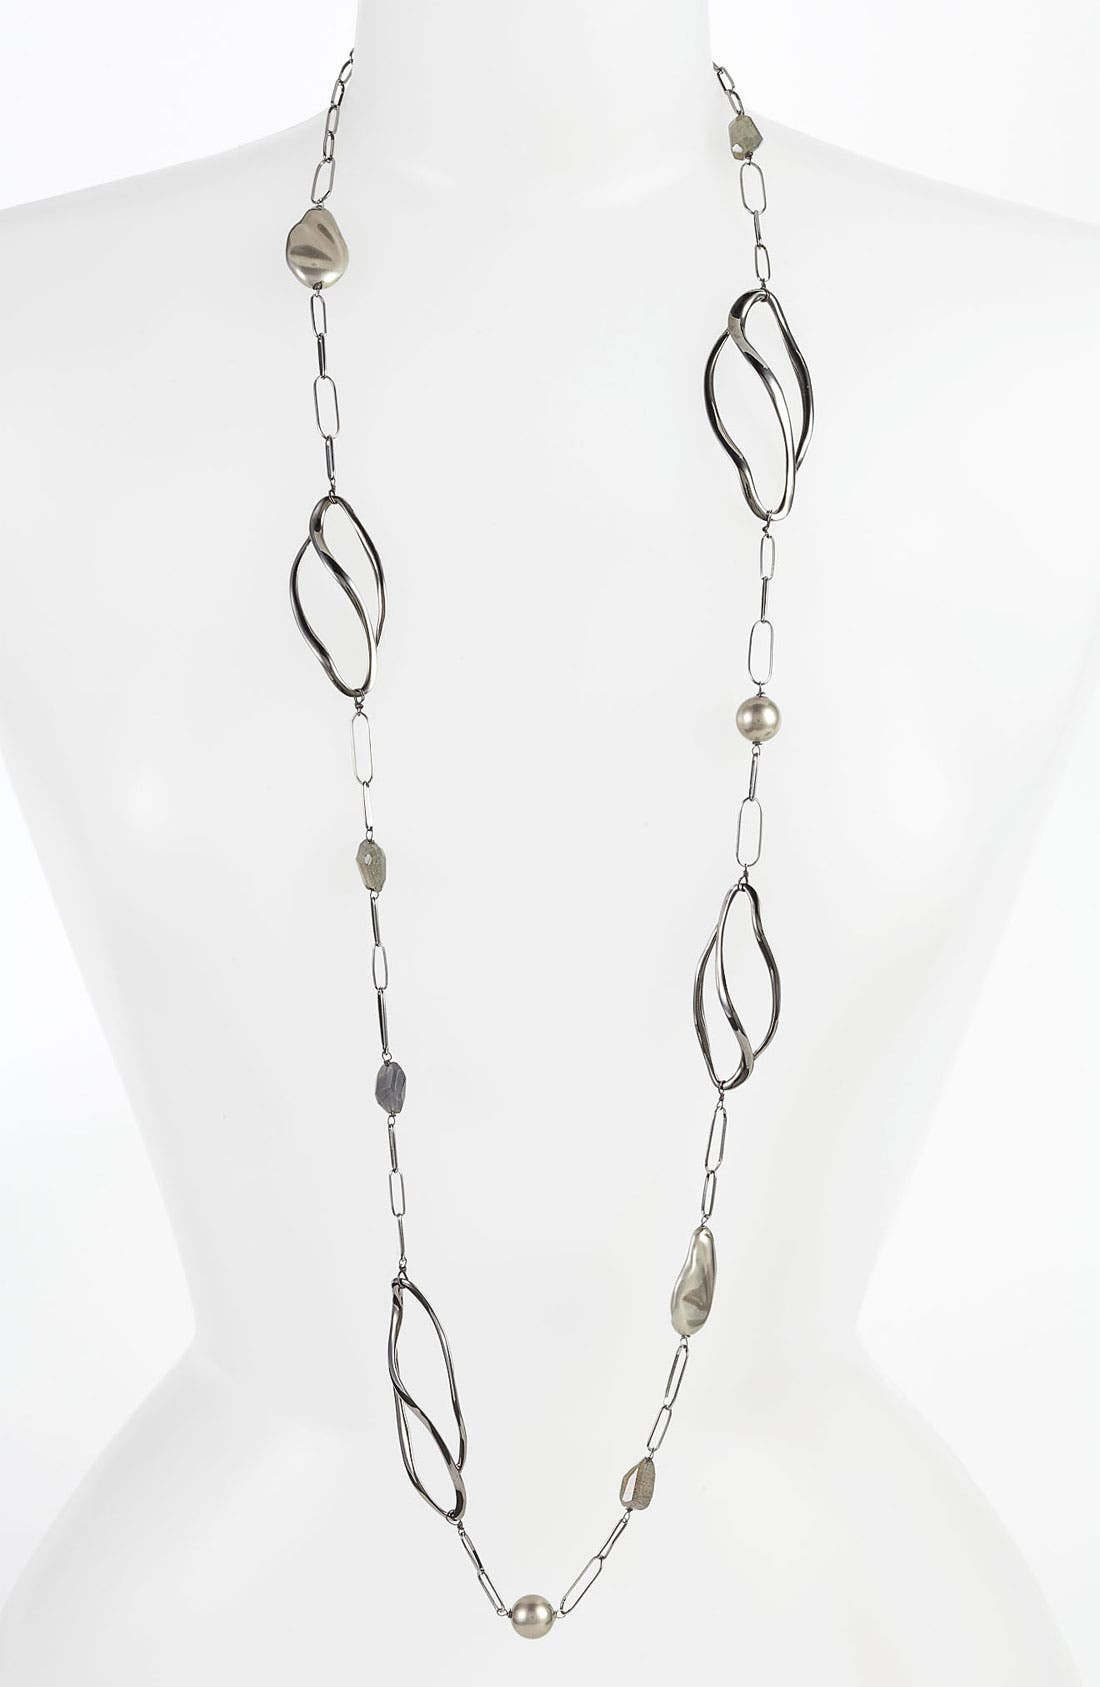 Main Image - Alexis Bittar 'Miss Havisham - Liquid' Linked Station Necklace (Nordstrom Exclusive)